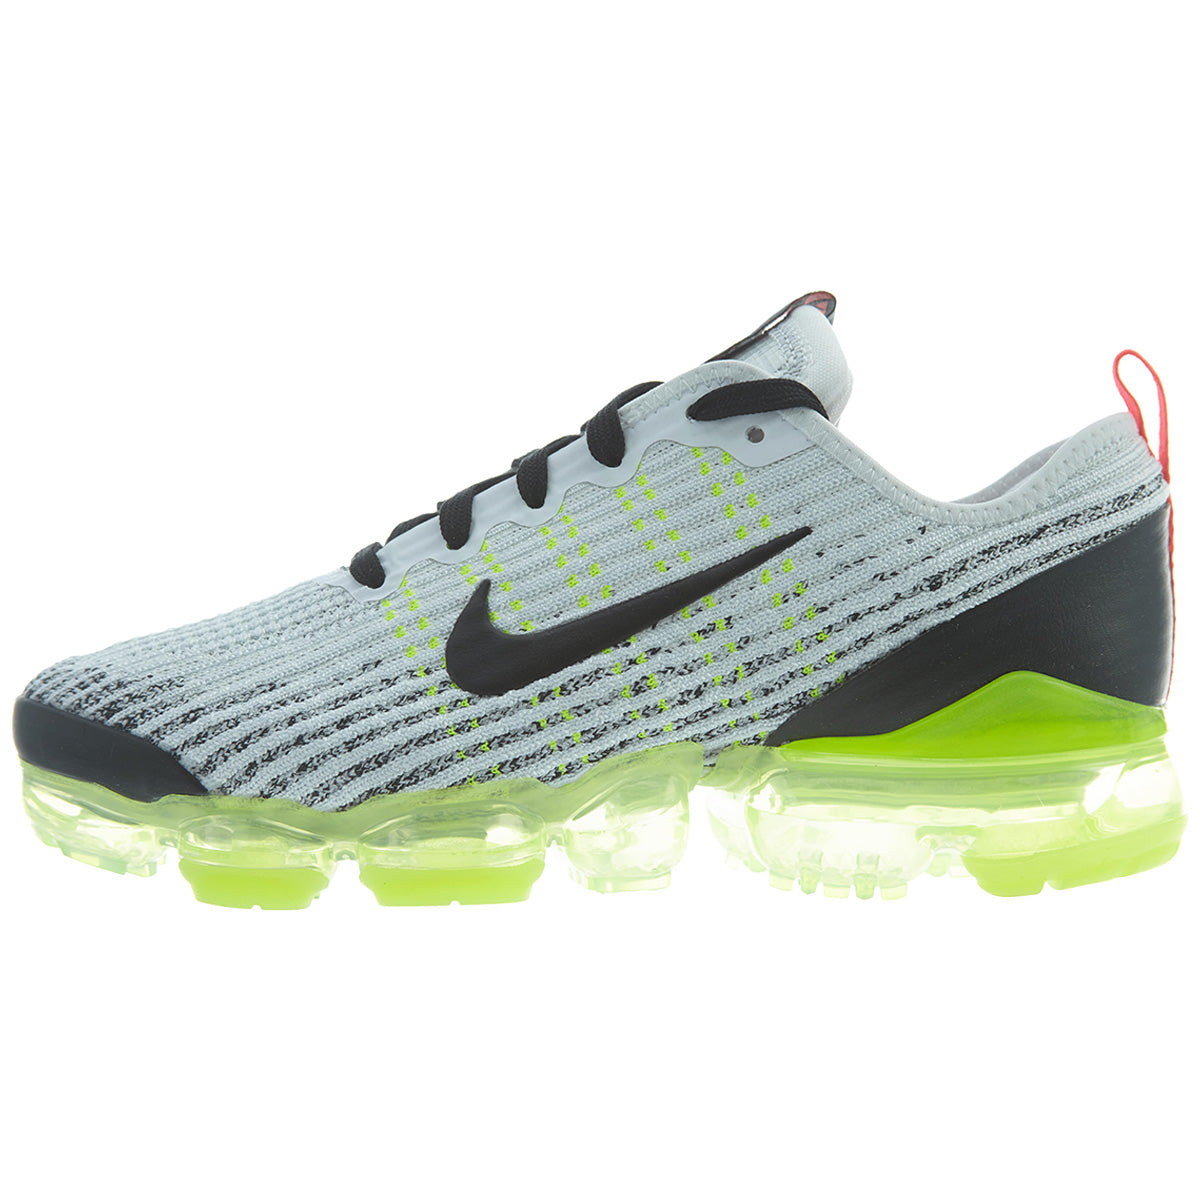 quality design 8e19f f8128 Nike Air Vapormax Flyknit 3 Big Kids Style : Bq5238-100